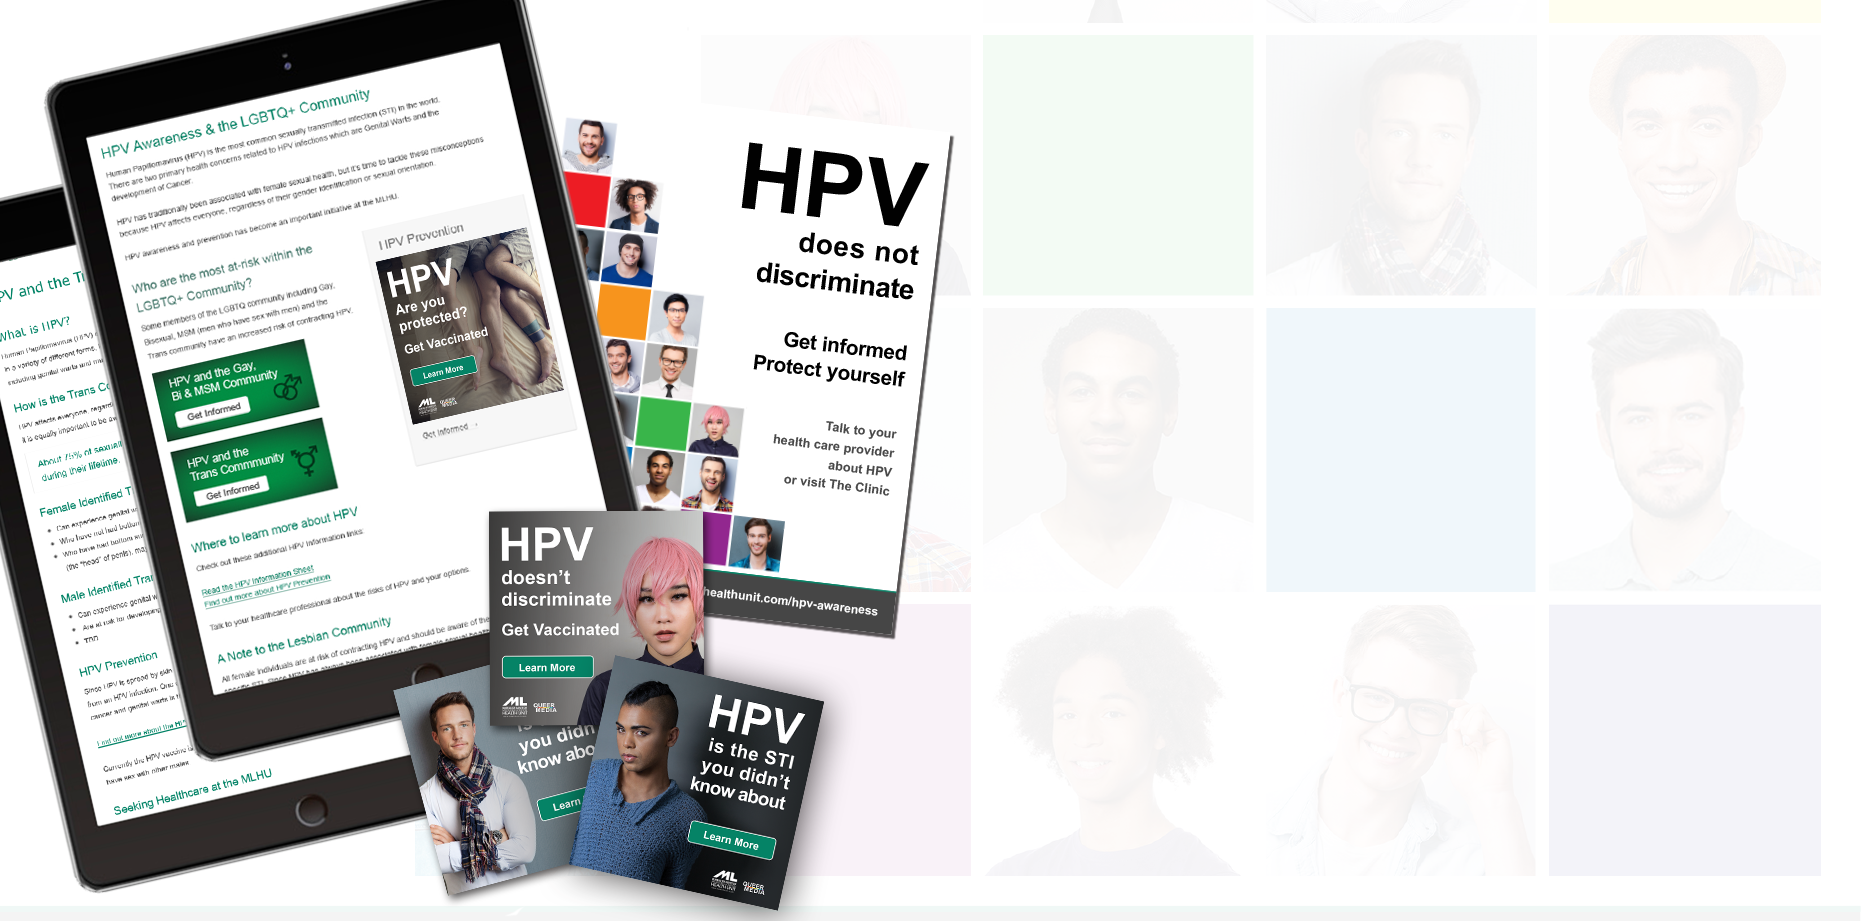 Queer Media - HPV Awareness Campaign